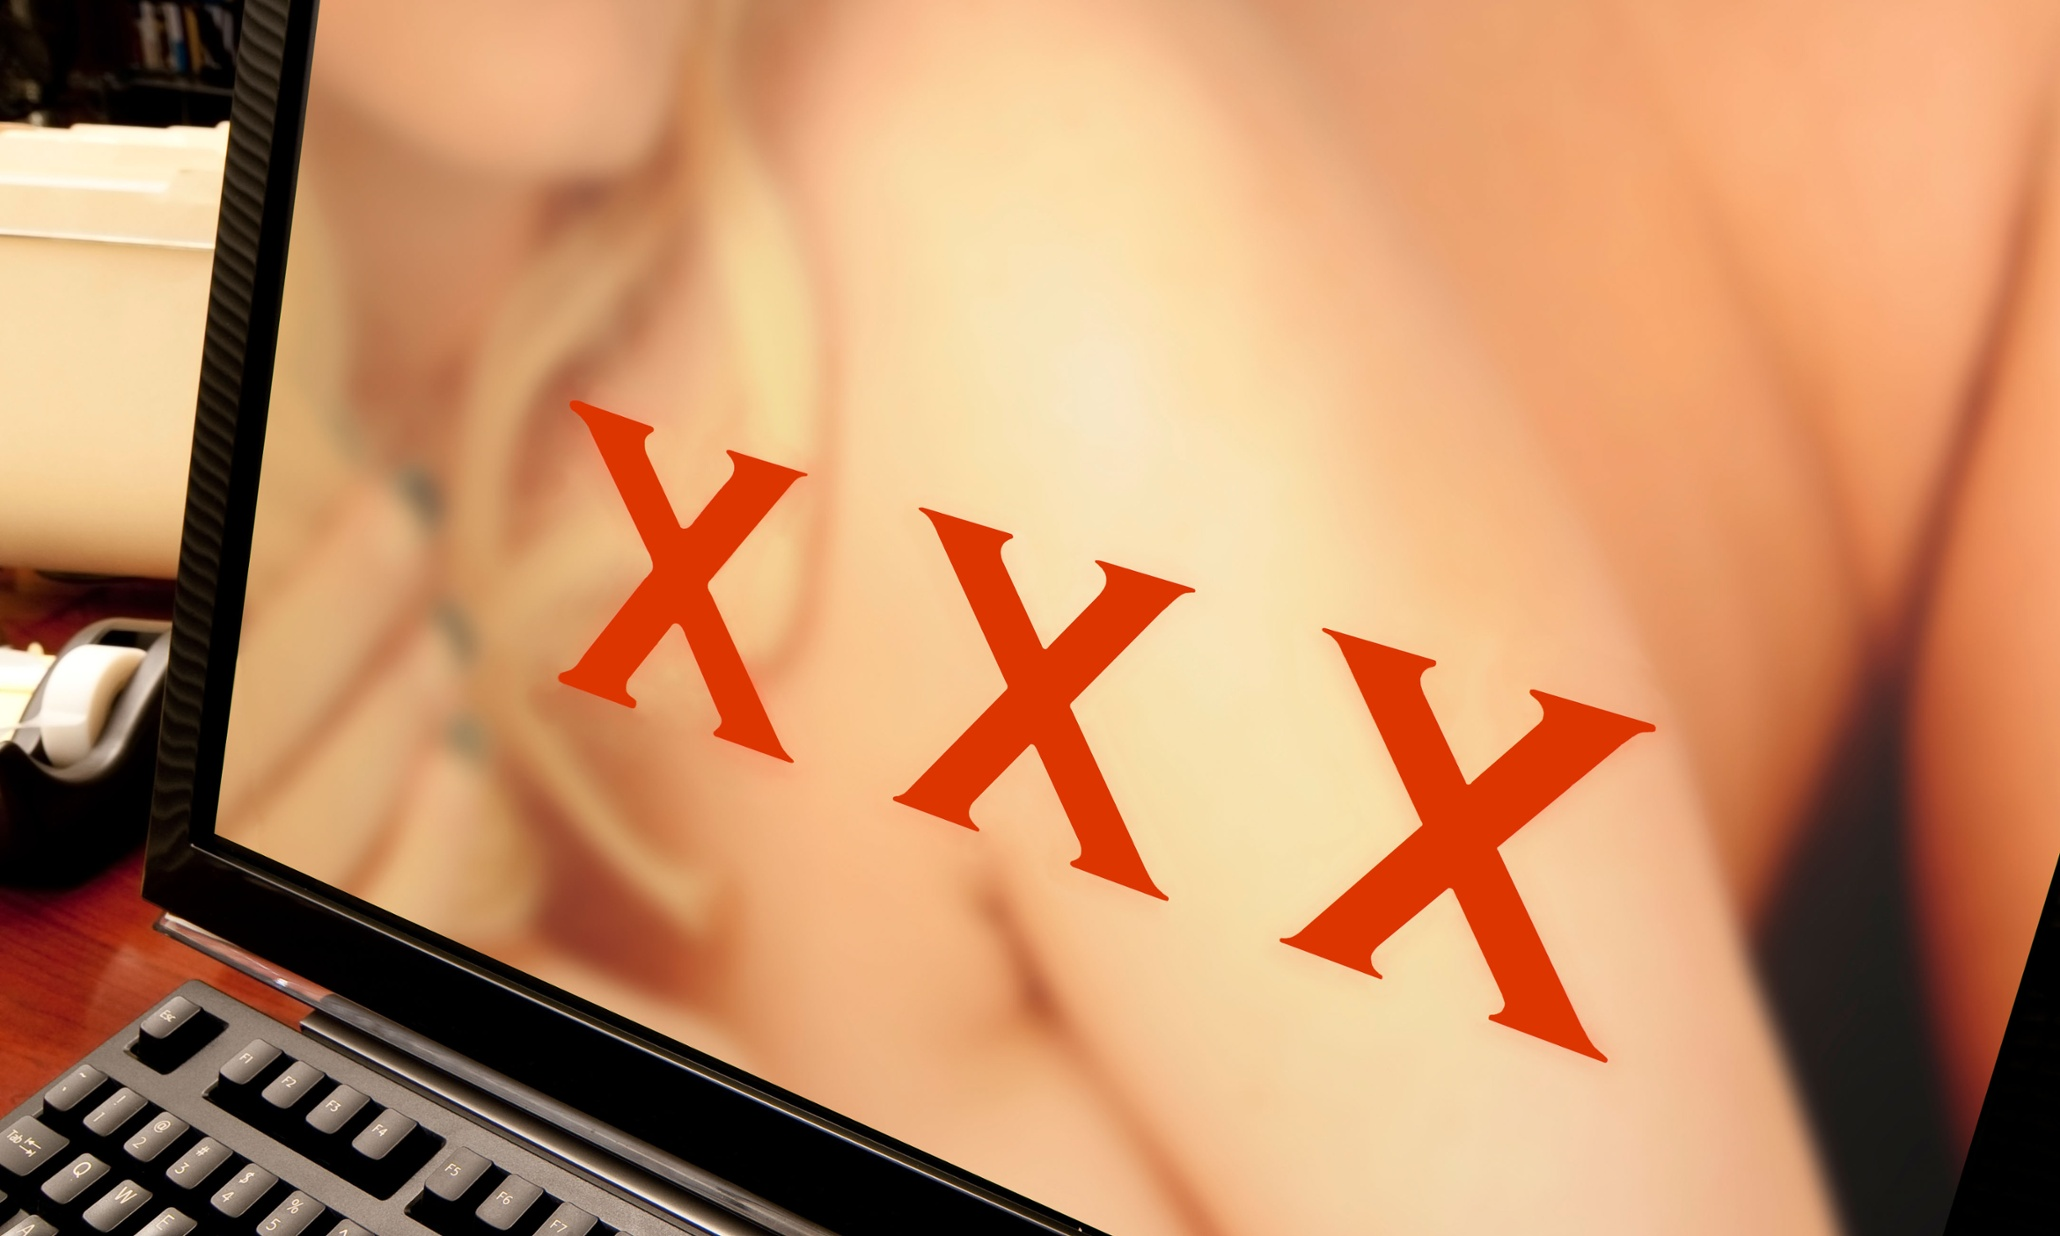 New online research claims a third of ads are going to porn sites and other